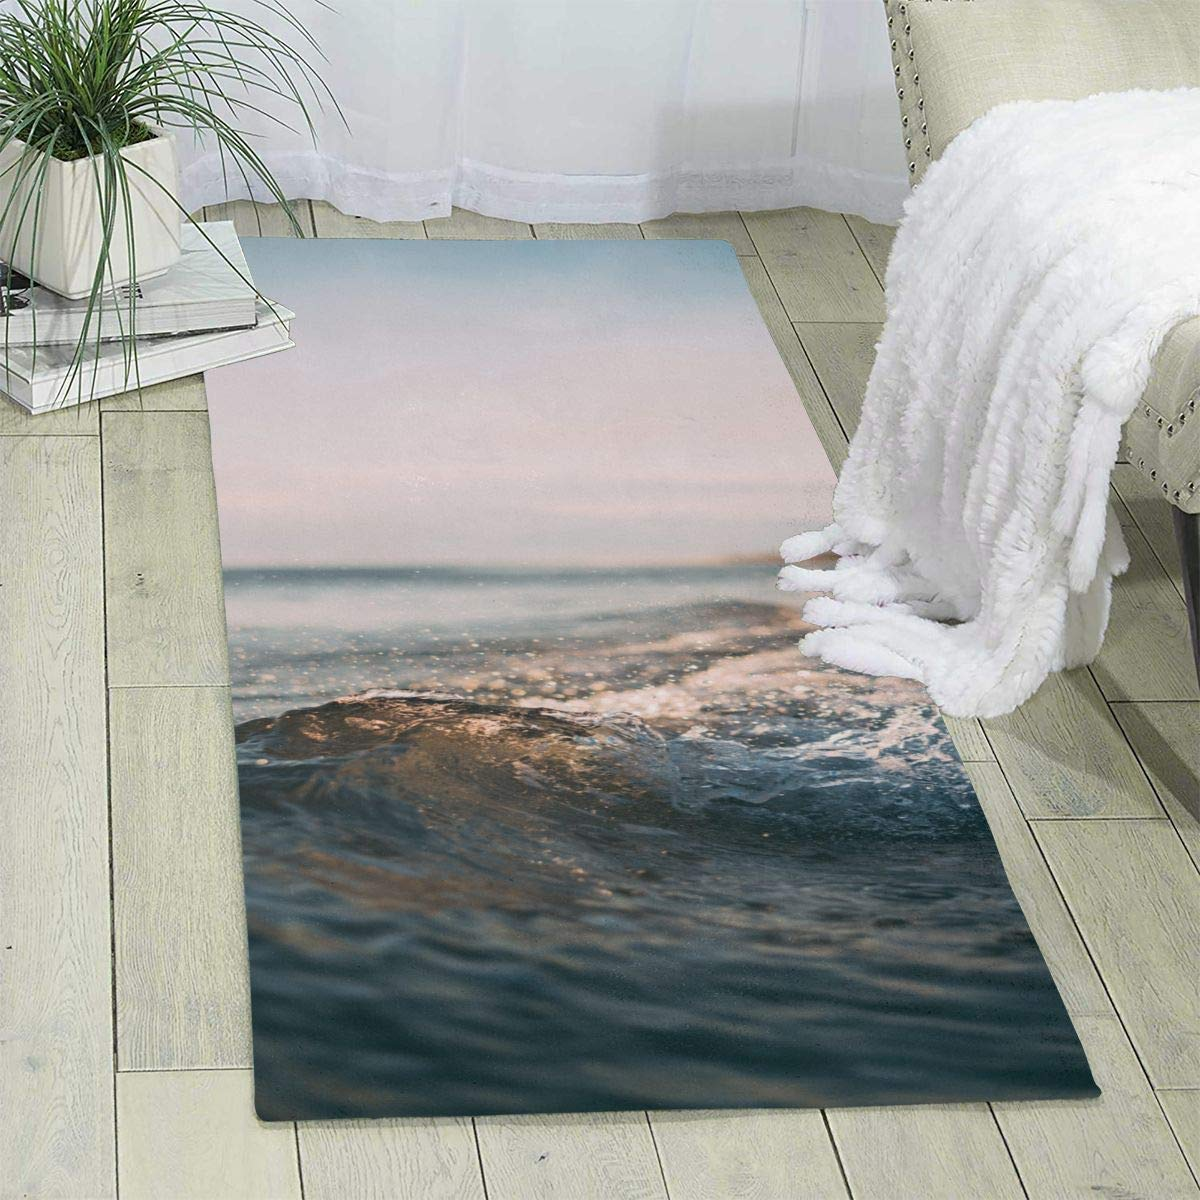 Amazon.com: Workout Mat for Yoga, Seaside Water Wave Print ...